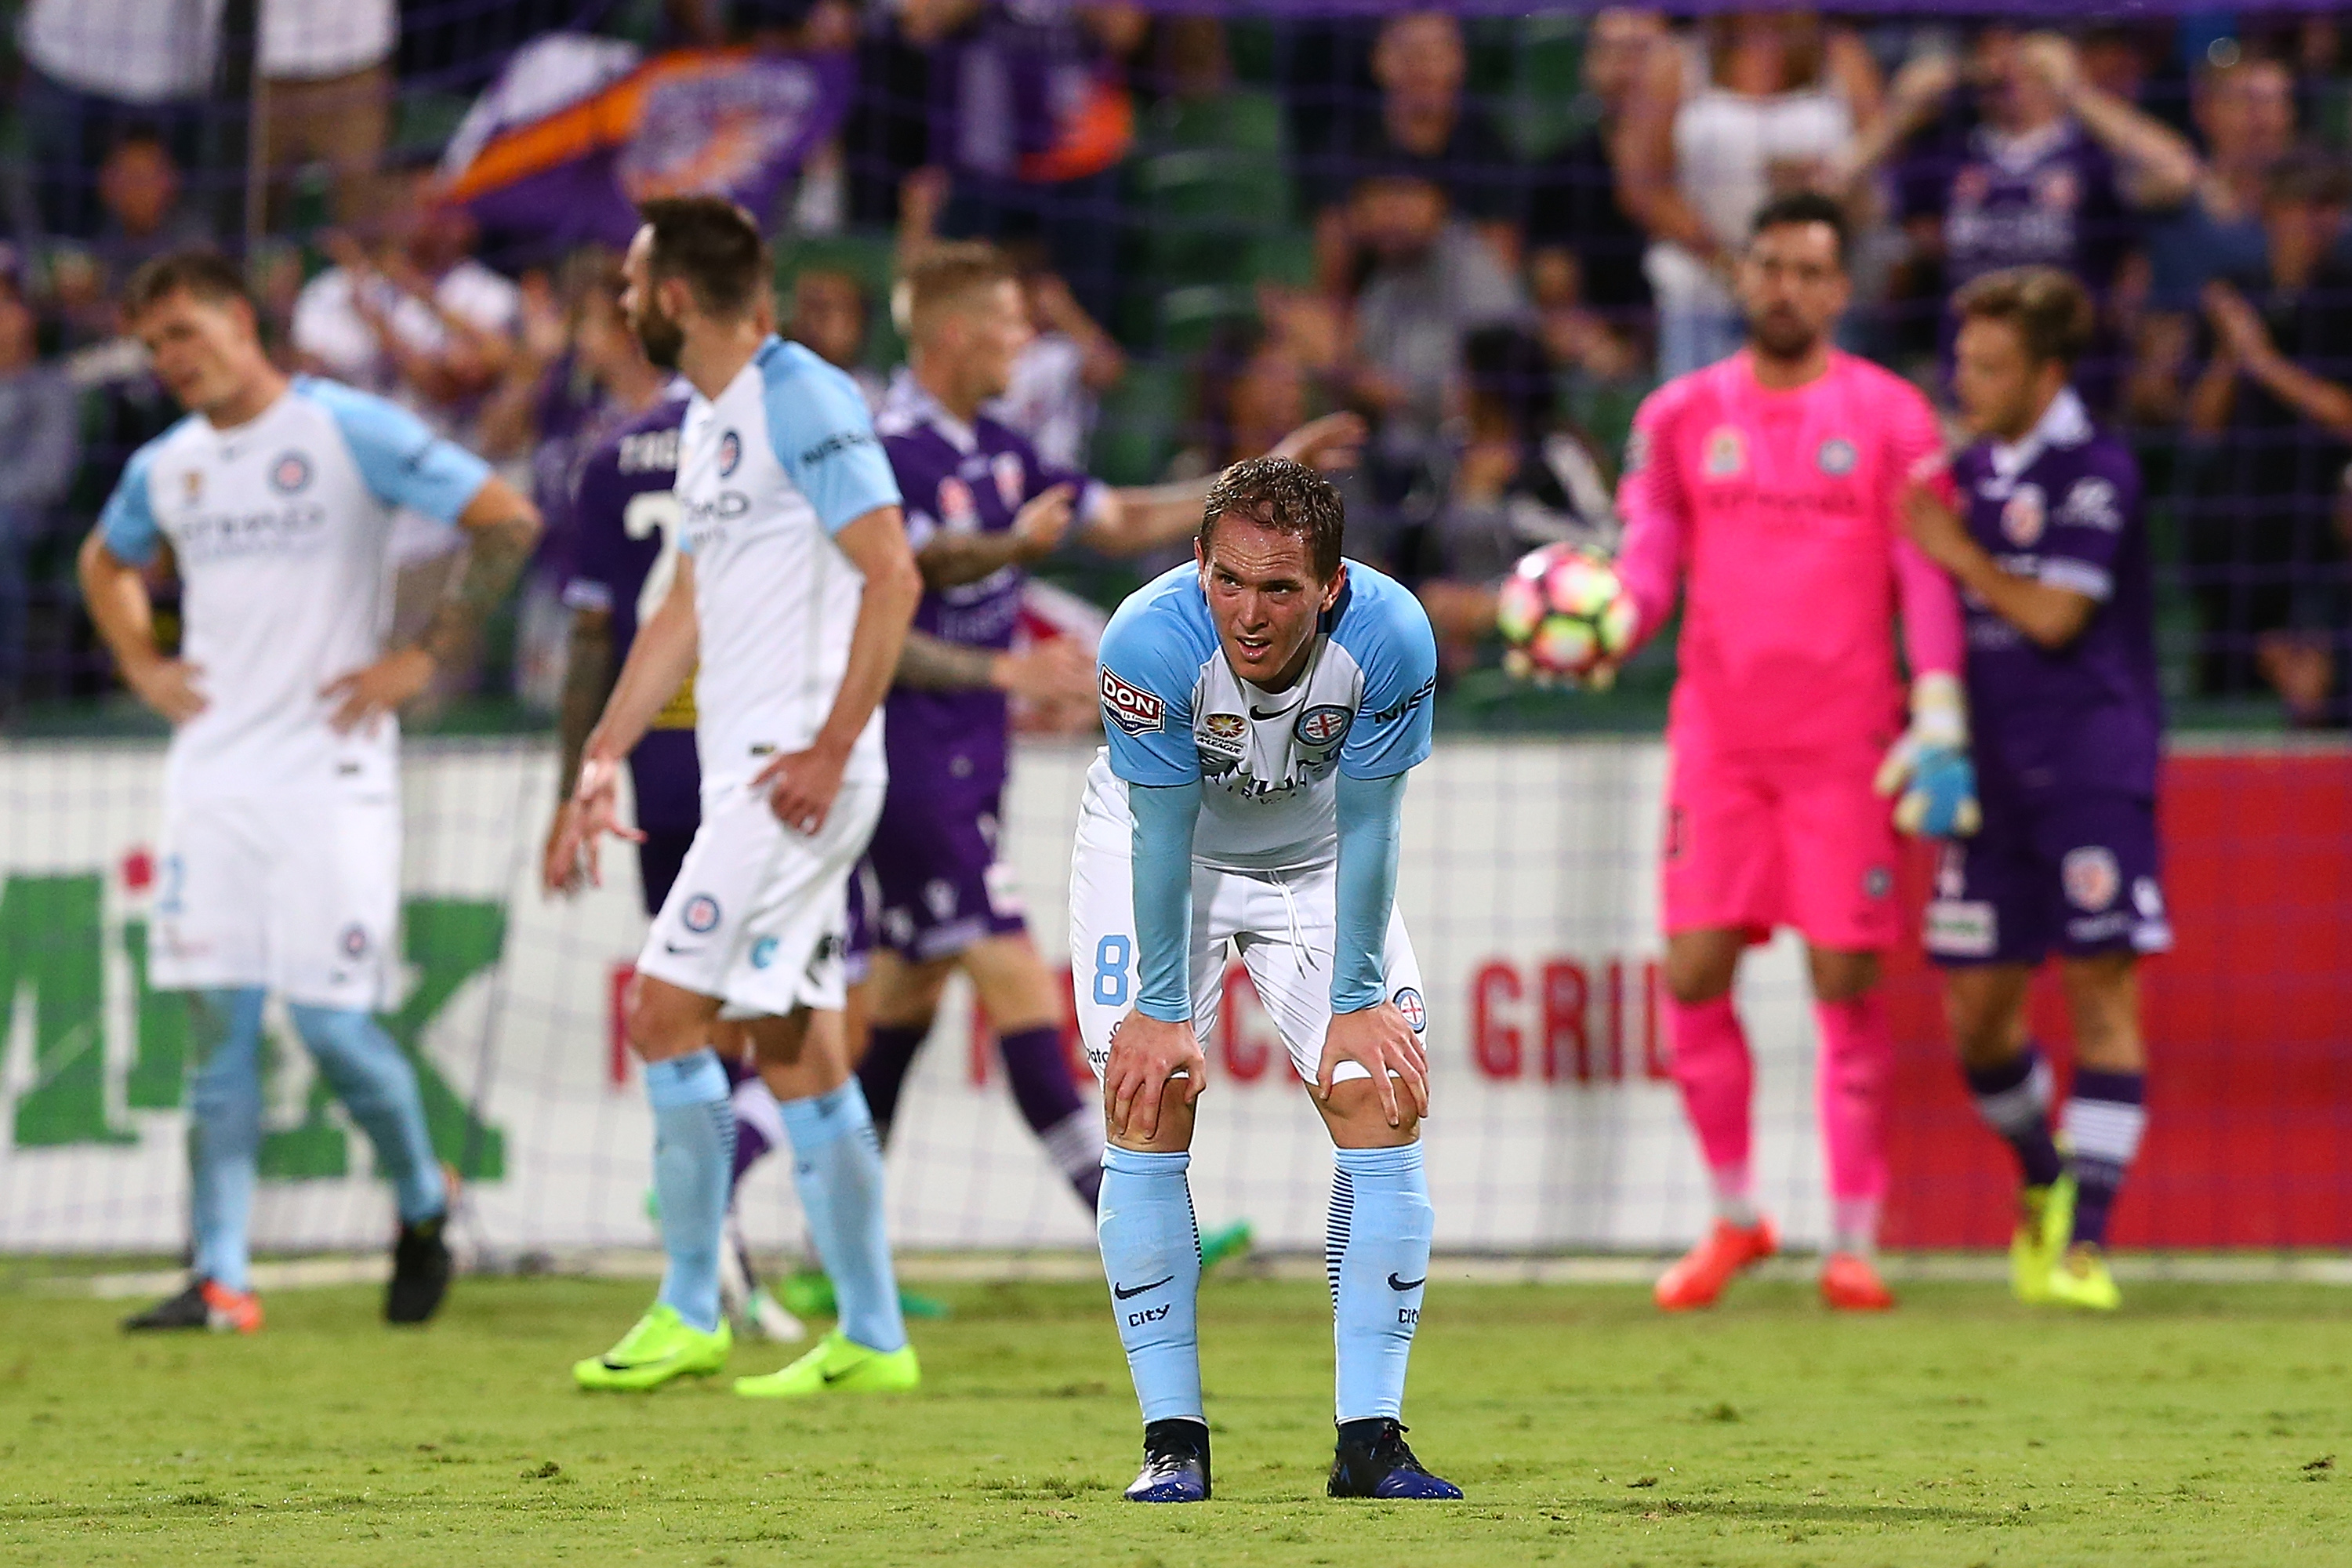 We saw one of the games of the season in rd 27, as Perth Glory beat Melbourne City 5-4 at nib.